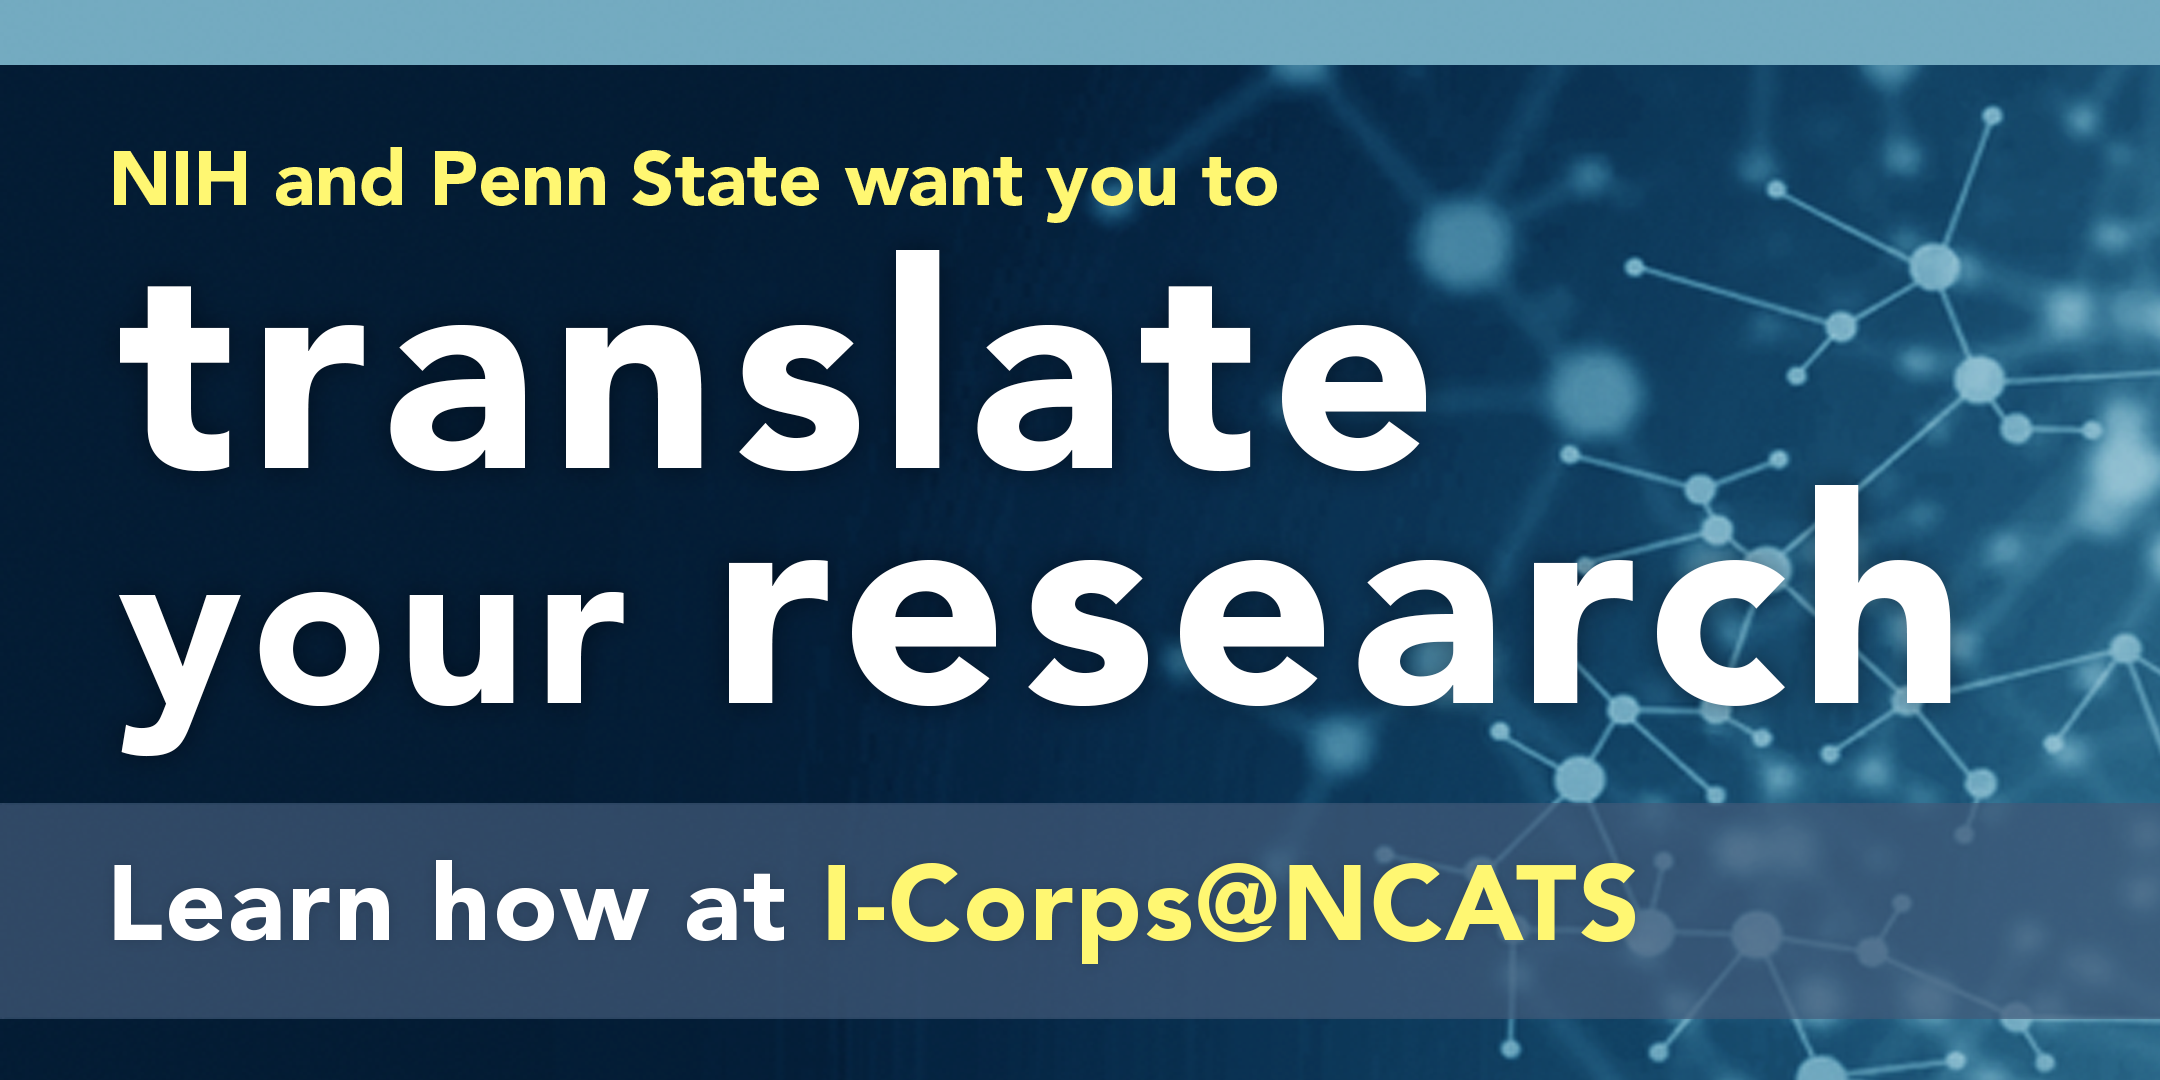 An image showing stylized neurons in the background with a blue bar at the top includes the text NIH and Penn State want you to translate your research; learn how at iCorps@NCATS. The words translate your research are in larger text.